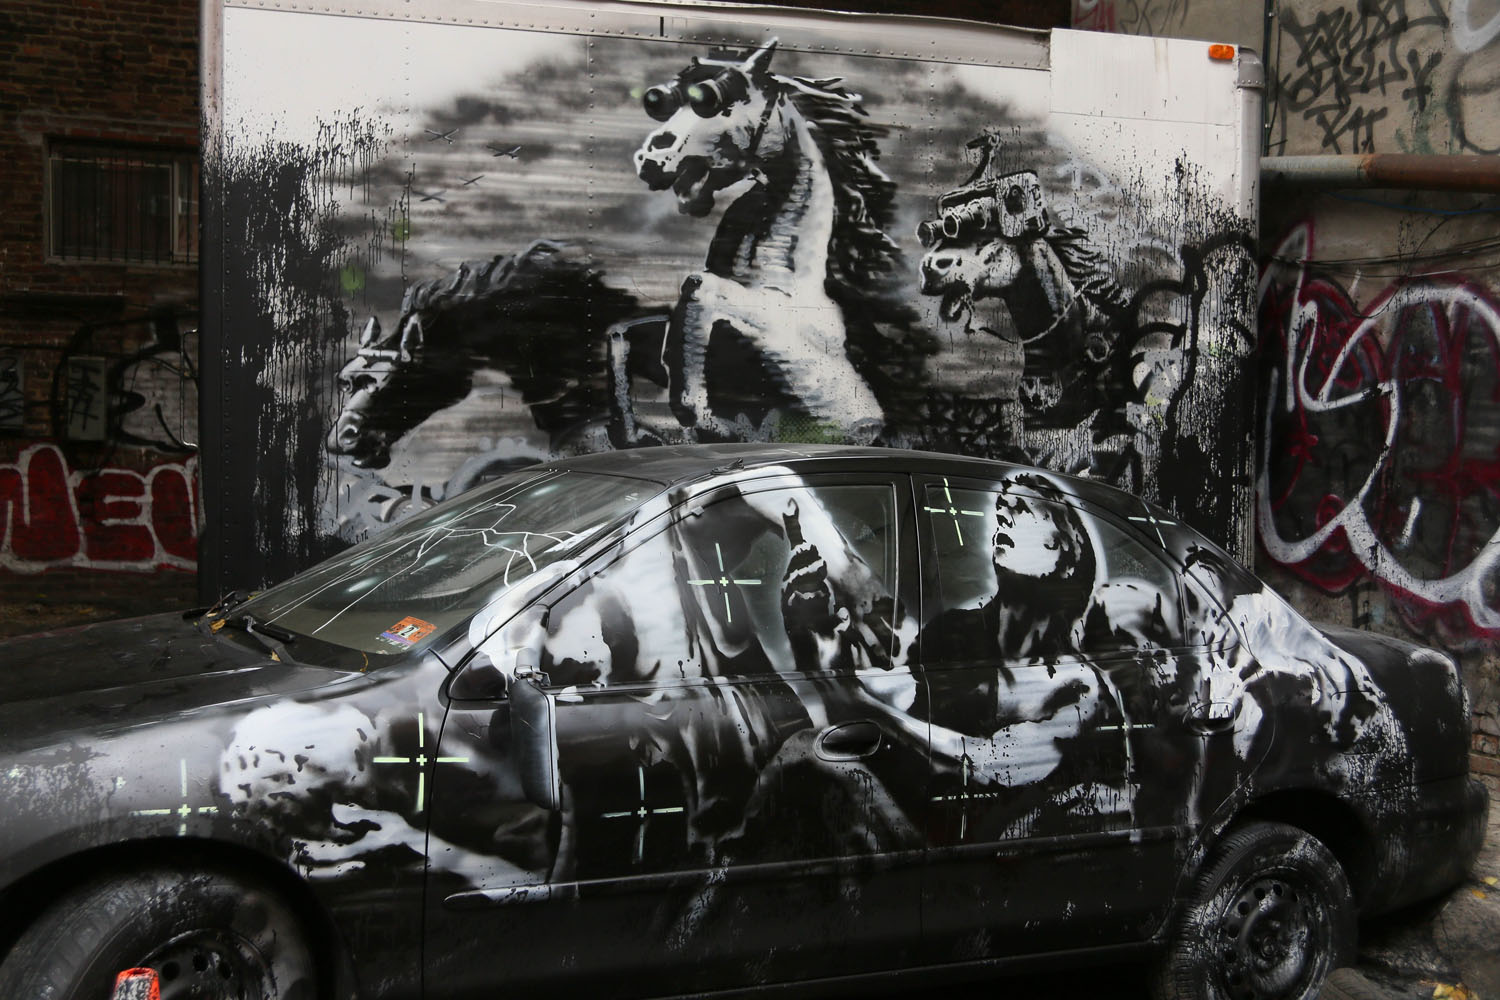 Oct. 9, 2013. The latest Banksy, featuring a man in the crosshairs peering up at three galloping horse in night vision goggles, appears in Lower Manhattan complete with WikiLeaks audio.